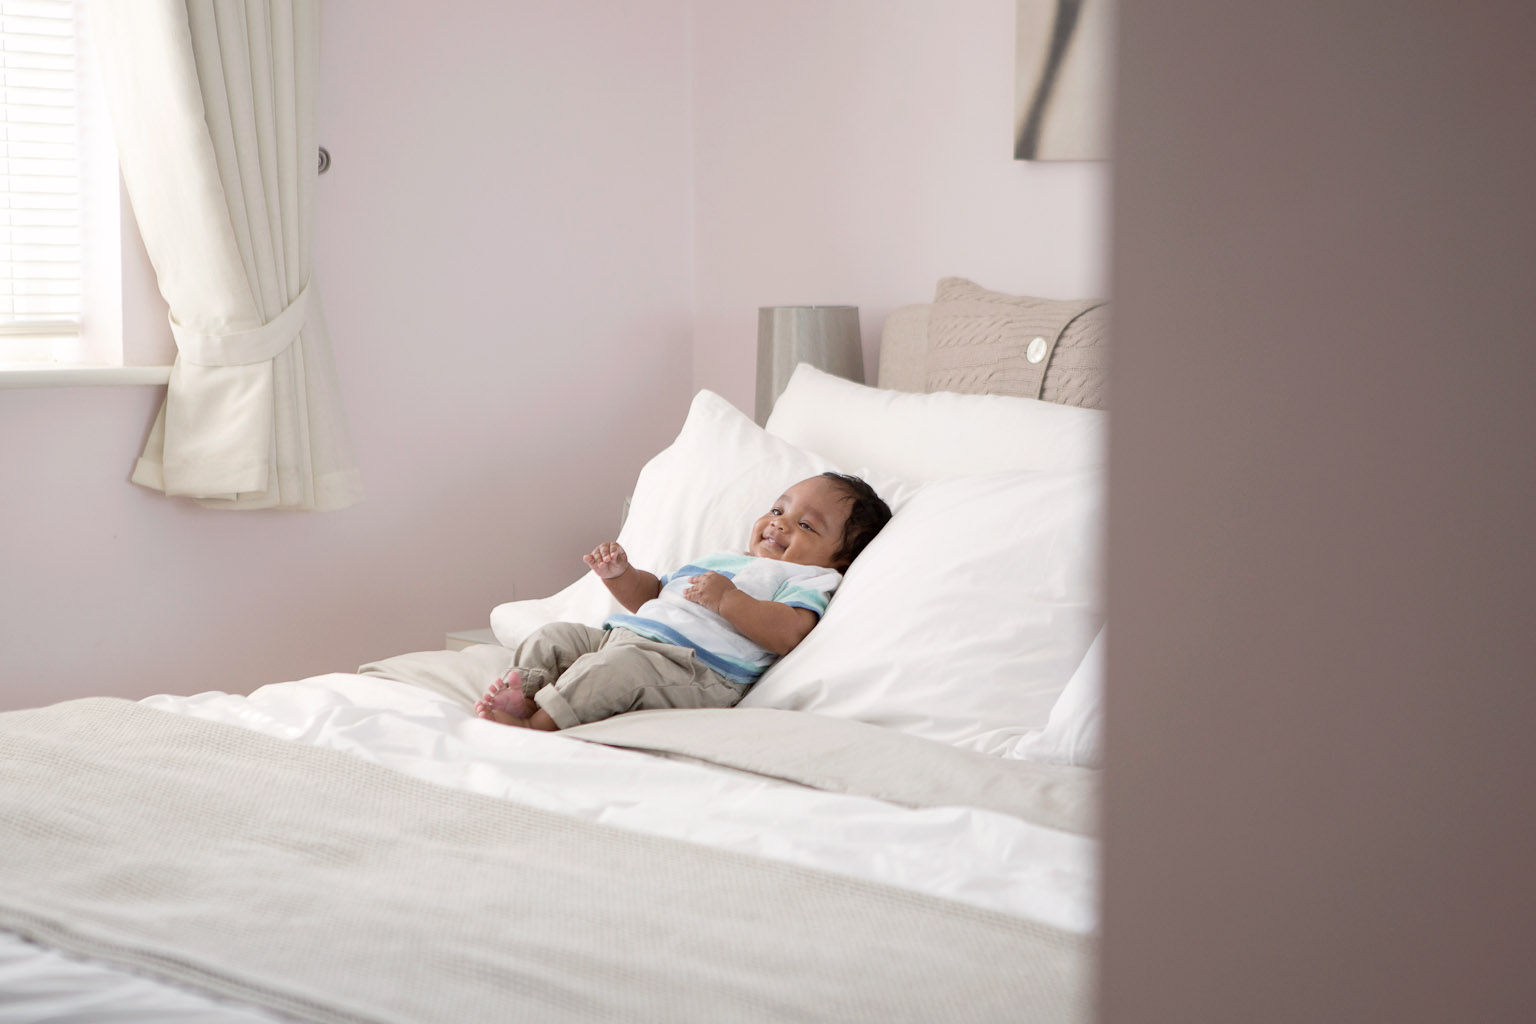 baby smiling on bed - lifestyle photography at home